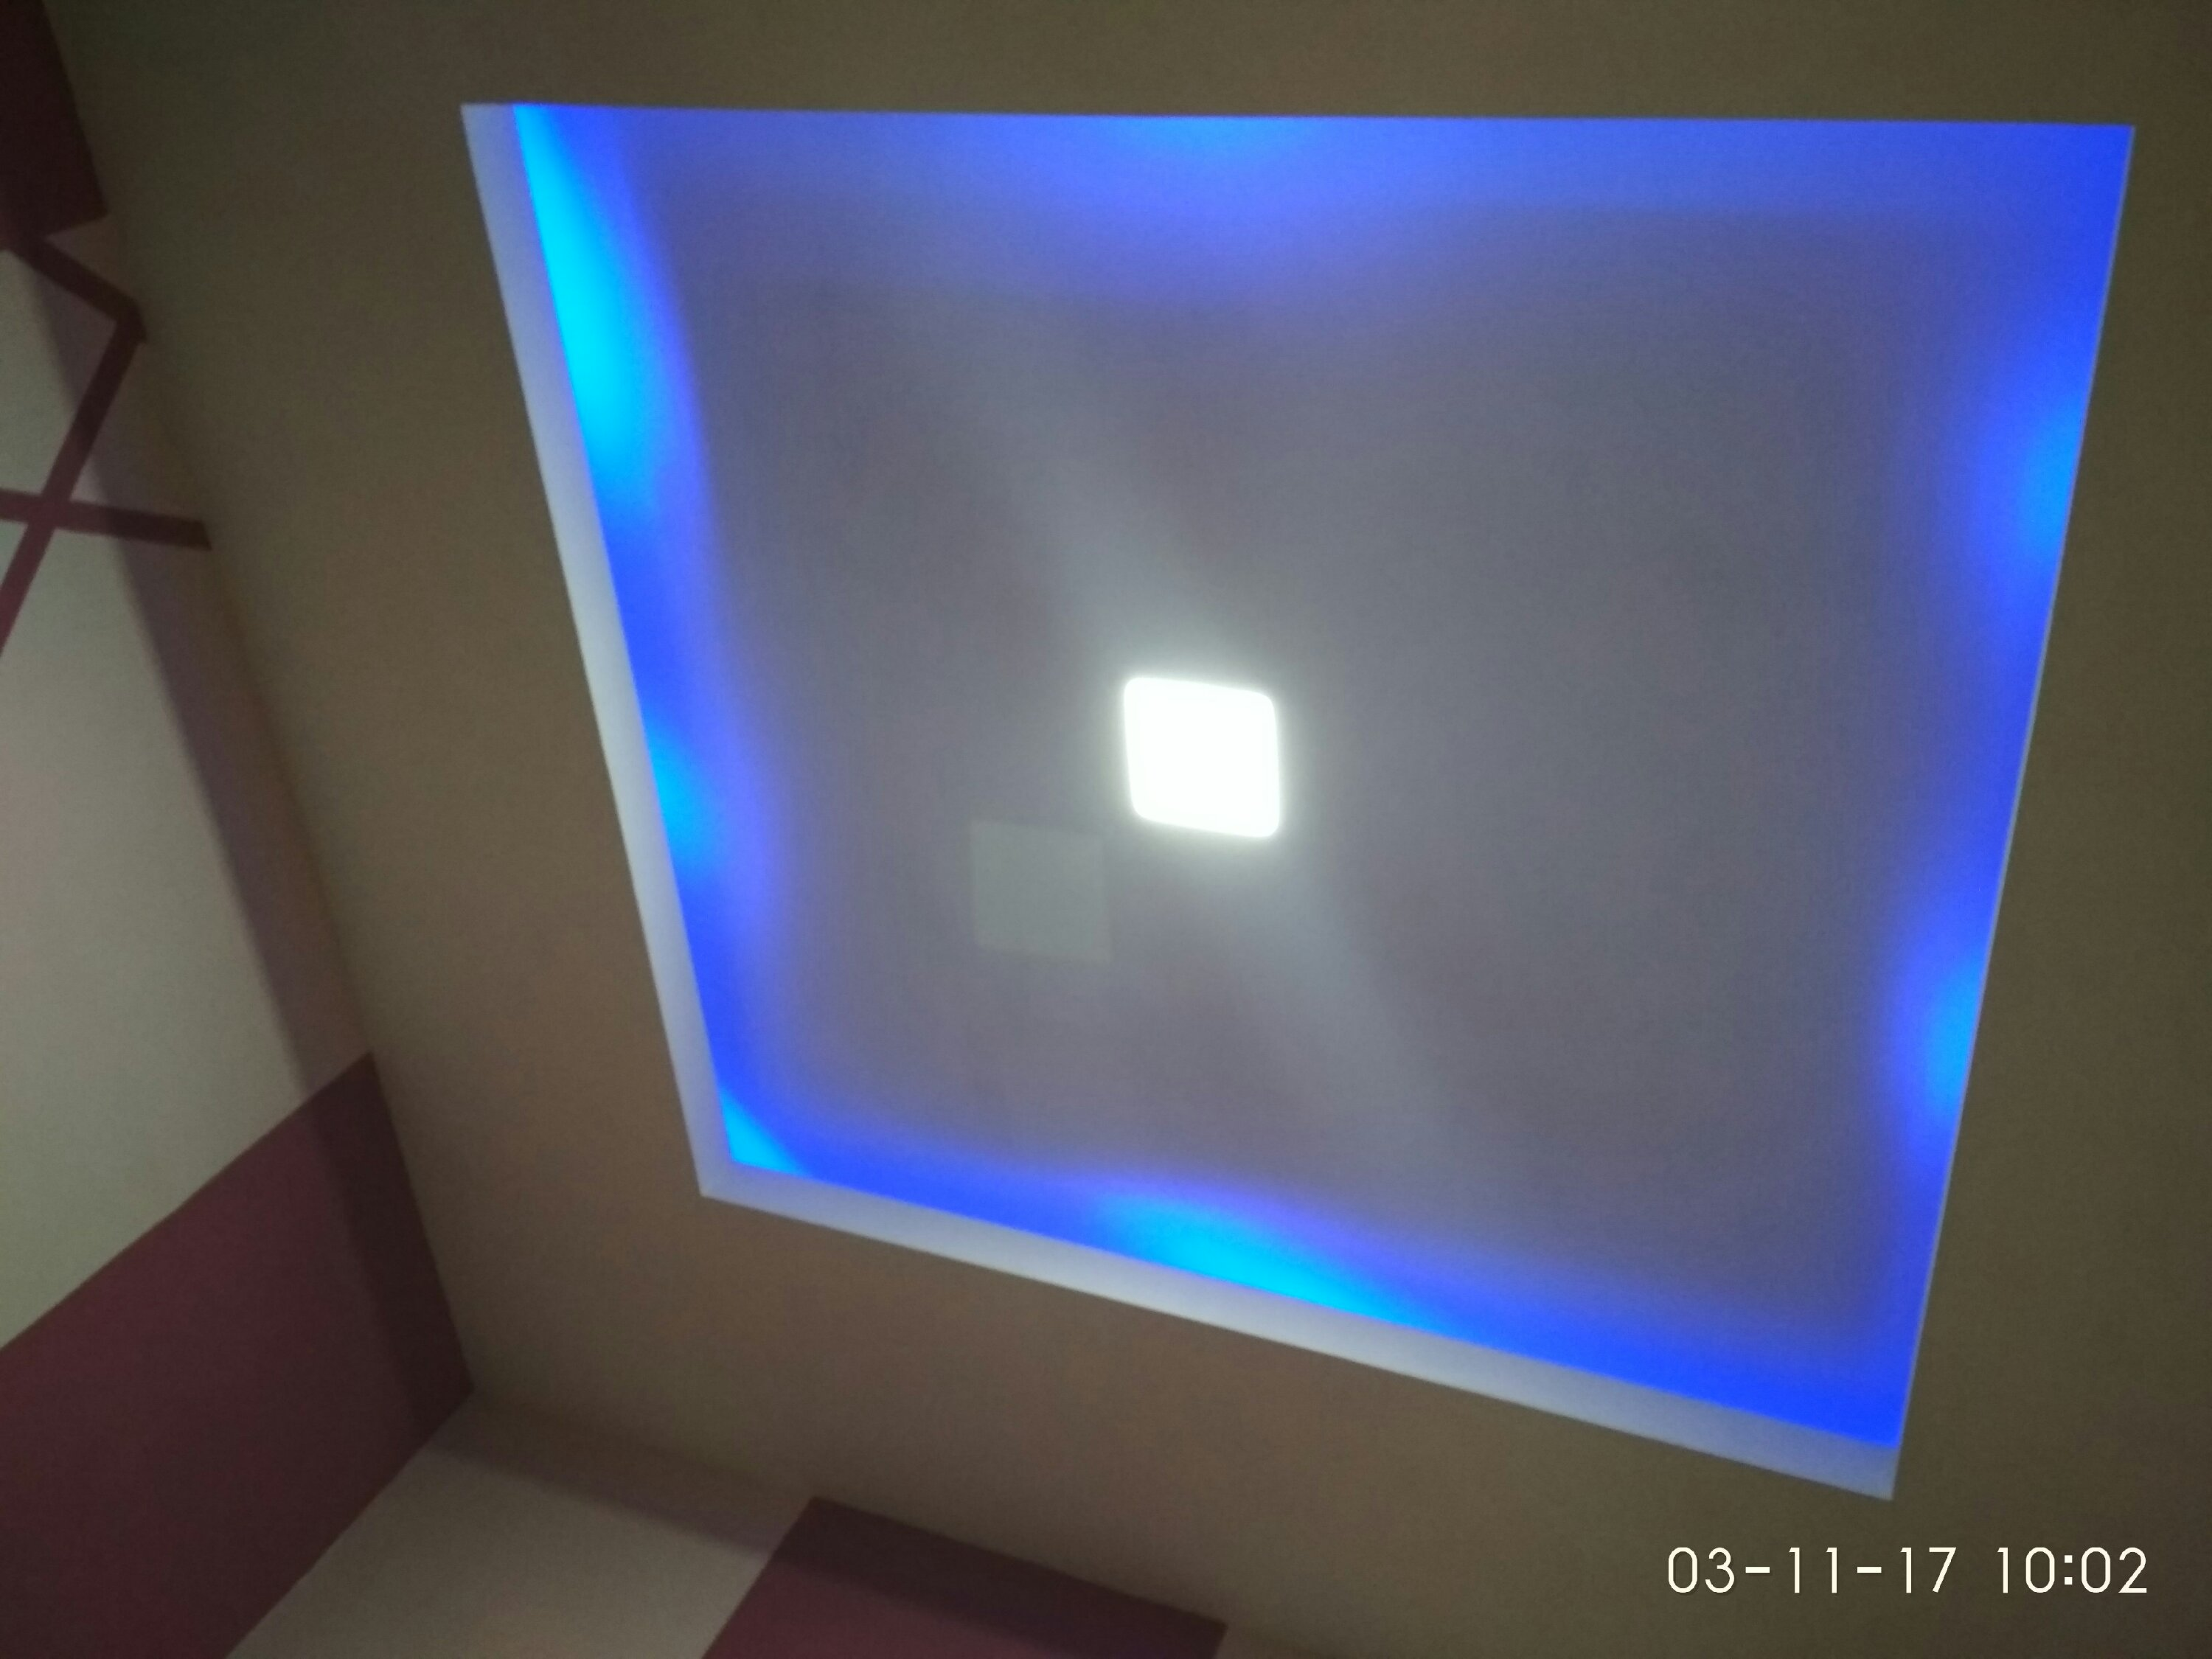 SERVIS INSTALL CEILING IN INDONESIAN